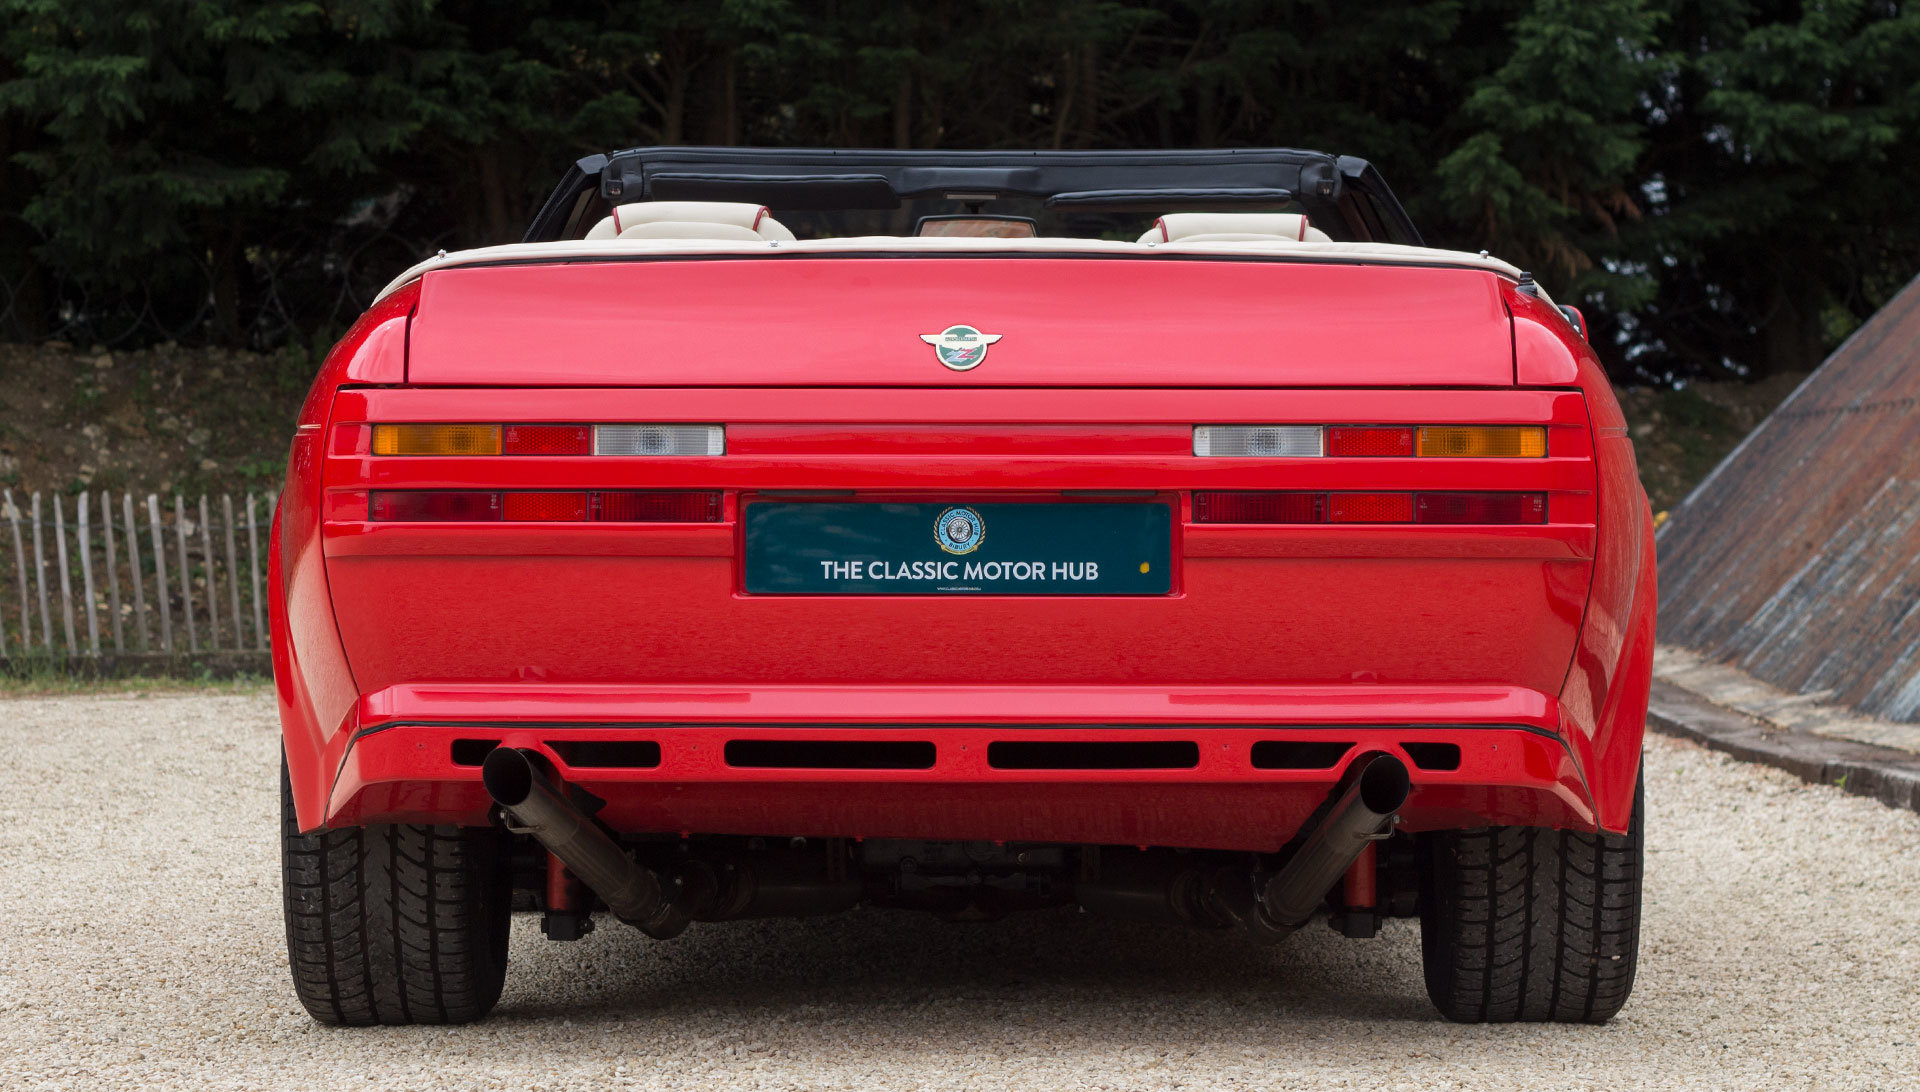 1989 Aston Martin V8 Vantage Volante Zagato 6.3 Litre For Sale (picture 4 of 24)